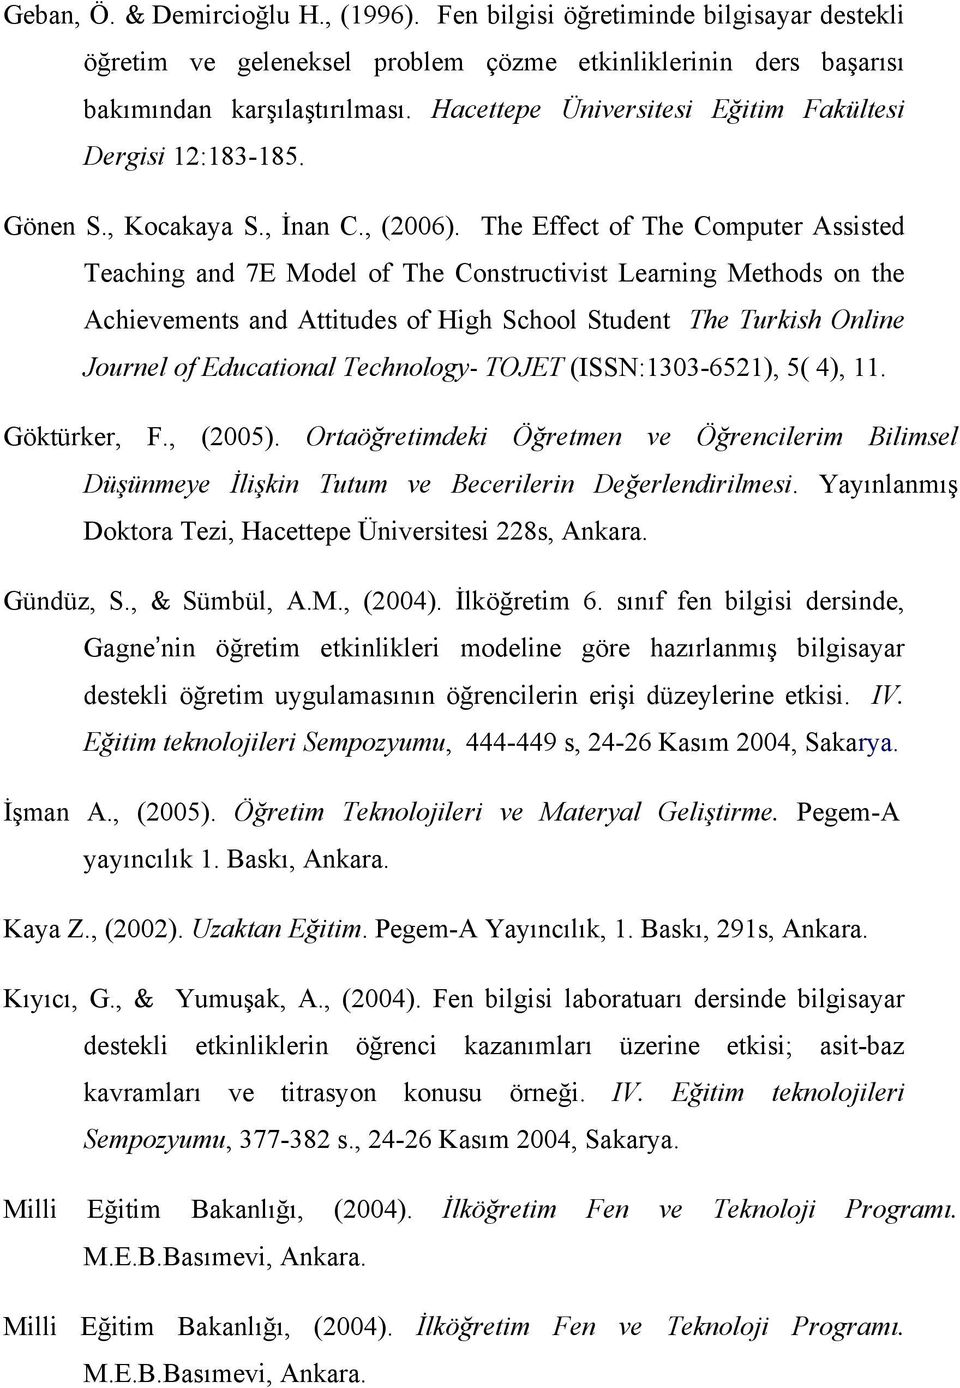 The Effect of The Computer Assisted Teaching and 7E Model of The Constructivist Learning Methods on the Achievements and Attitudes of High School Student The Turkish Online Journel of Educational